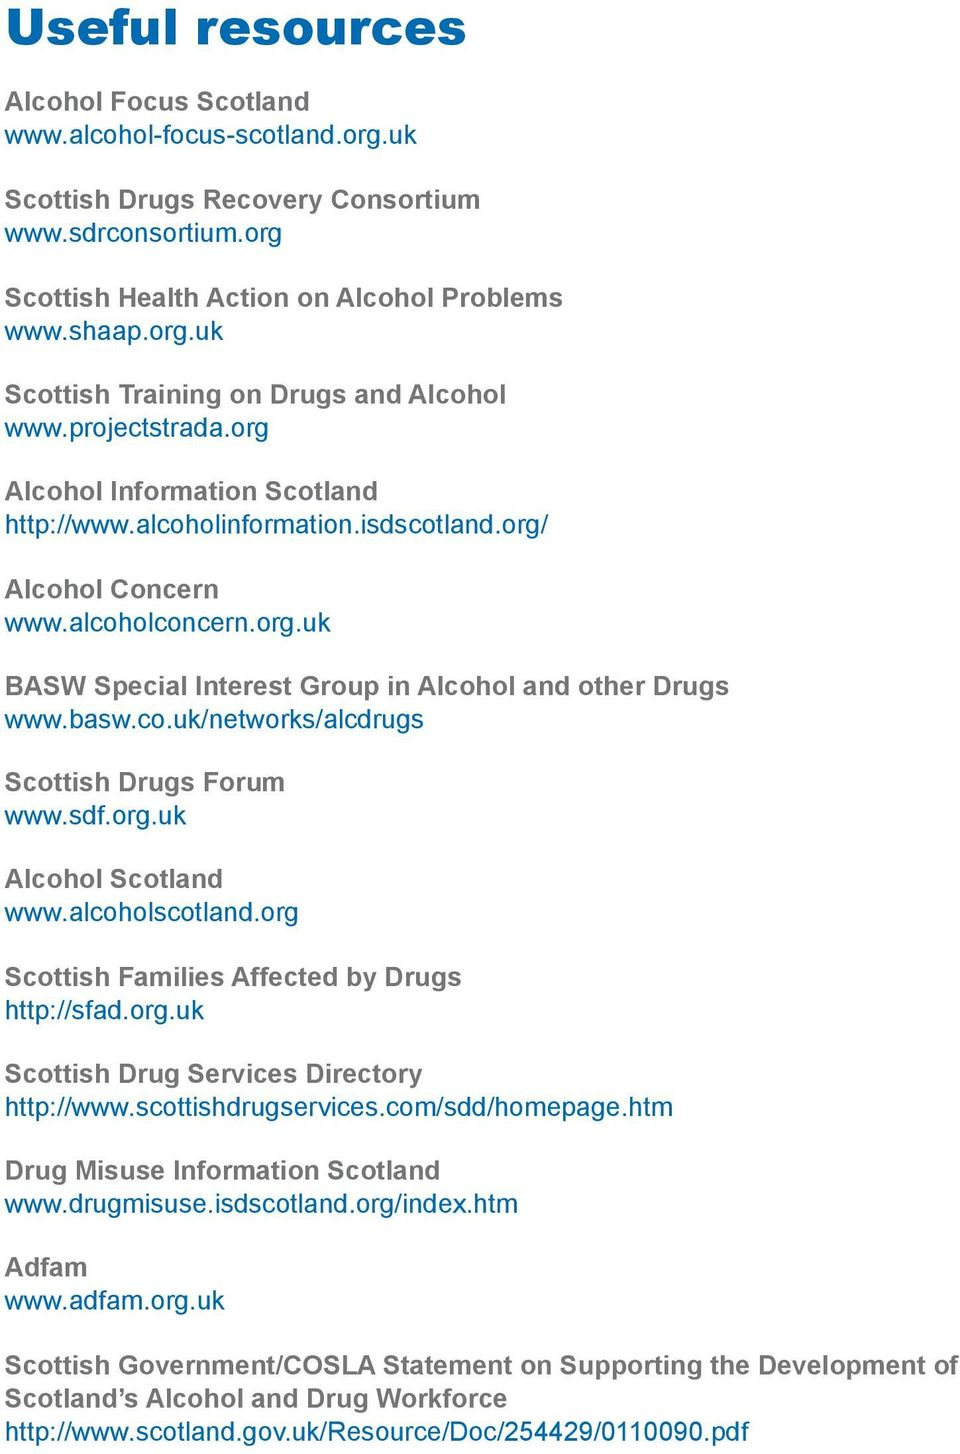 co.uk/networks/alcdrugs Scottish Drugs Forum www.sdf.org.uk Alcohol Scotland www.alcoholscotland.org Scottish Families Affected by Drugs http://sfad.org.uk Scottish Drug Services Directory http://www.